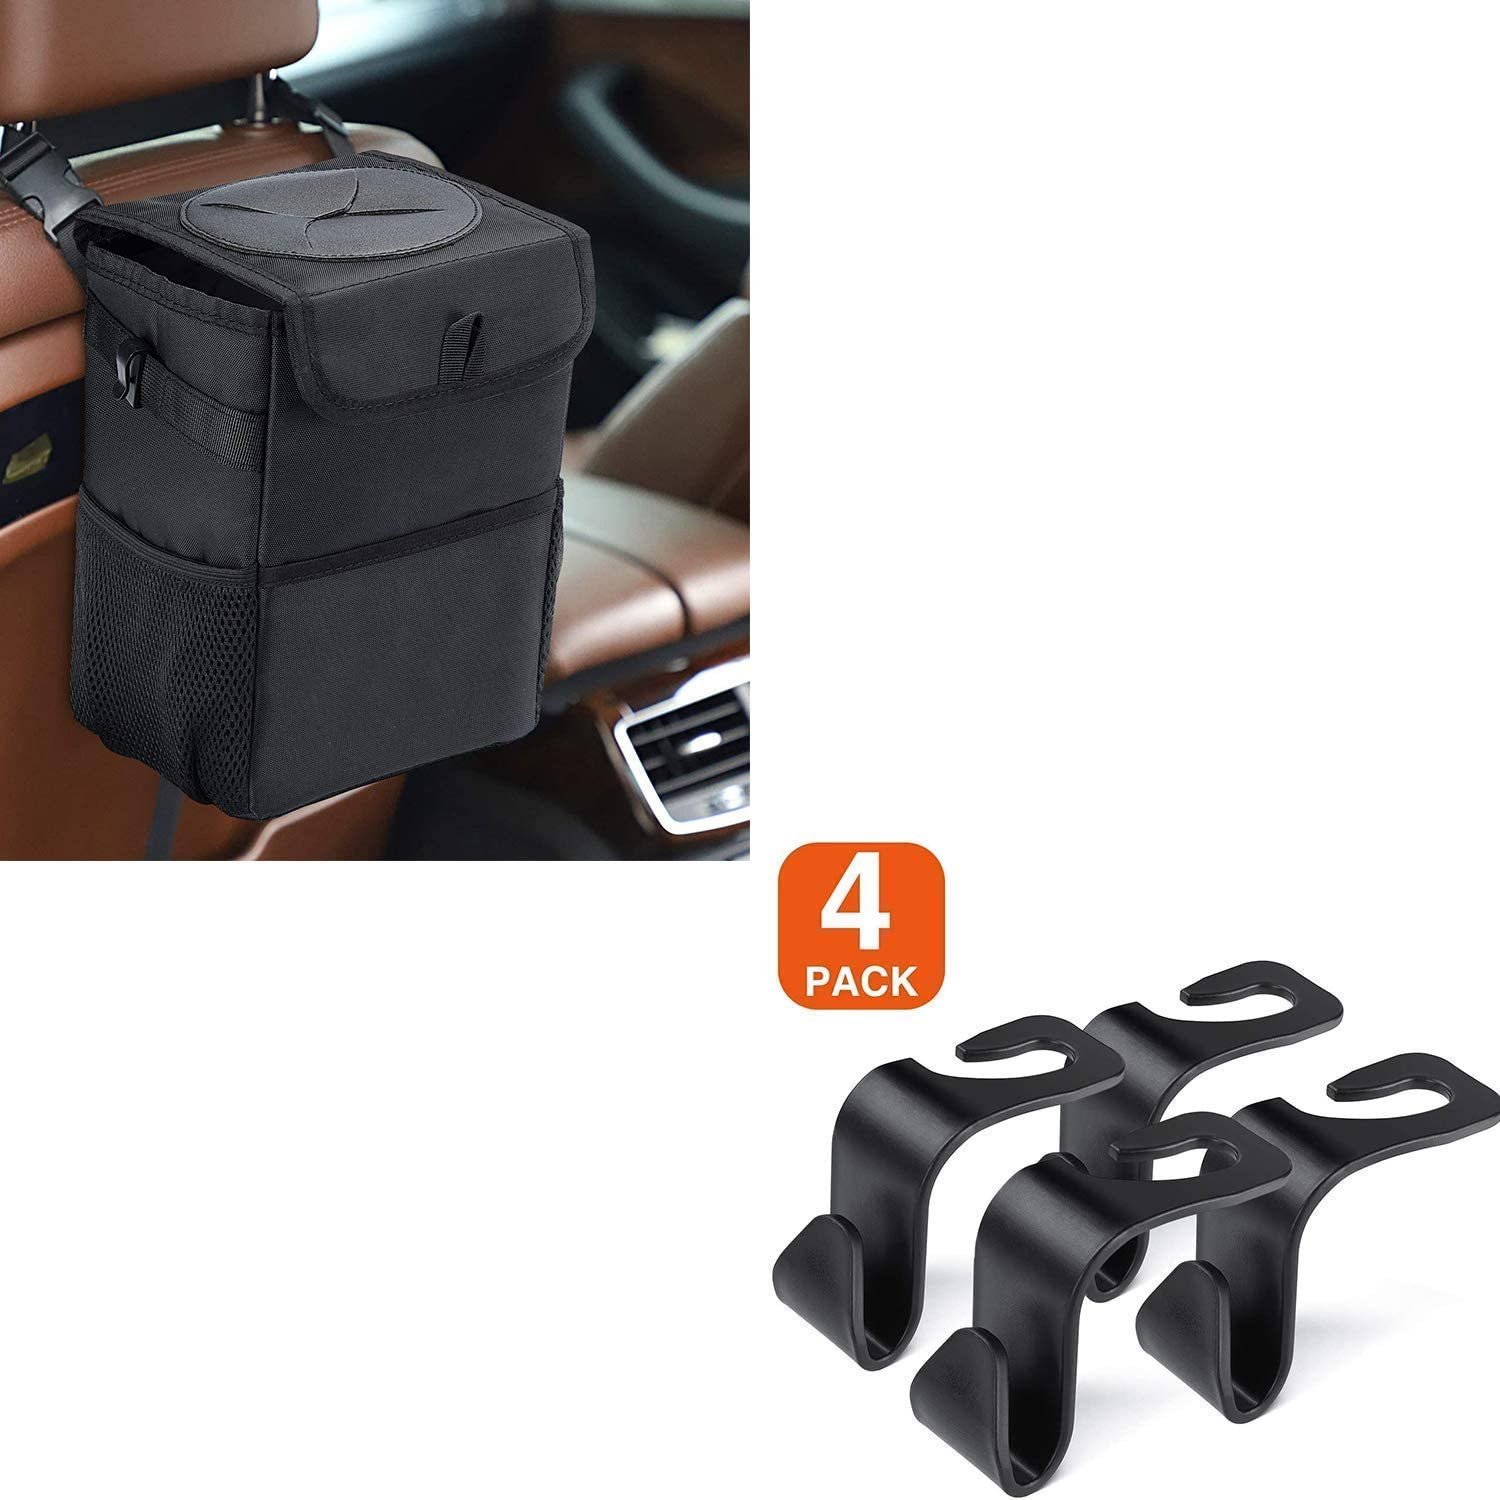 Car Seat Headrest Hooks for Car and Trash Can with Lid and Storage Pockets Bundle